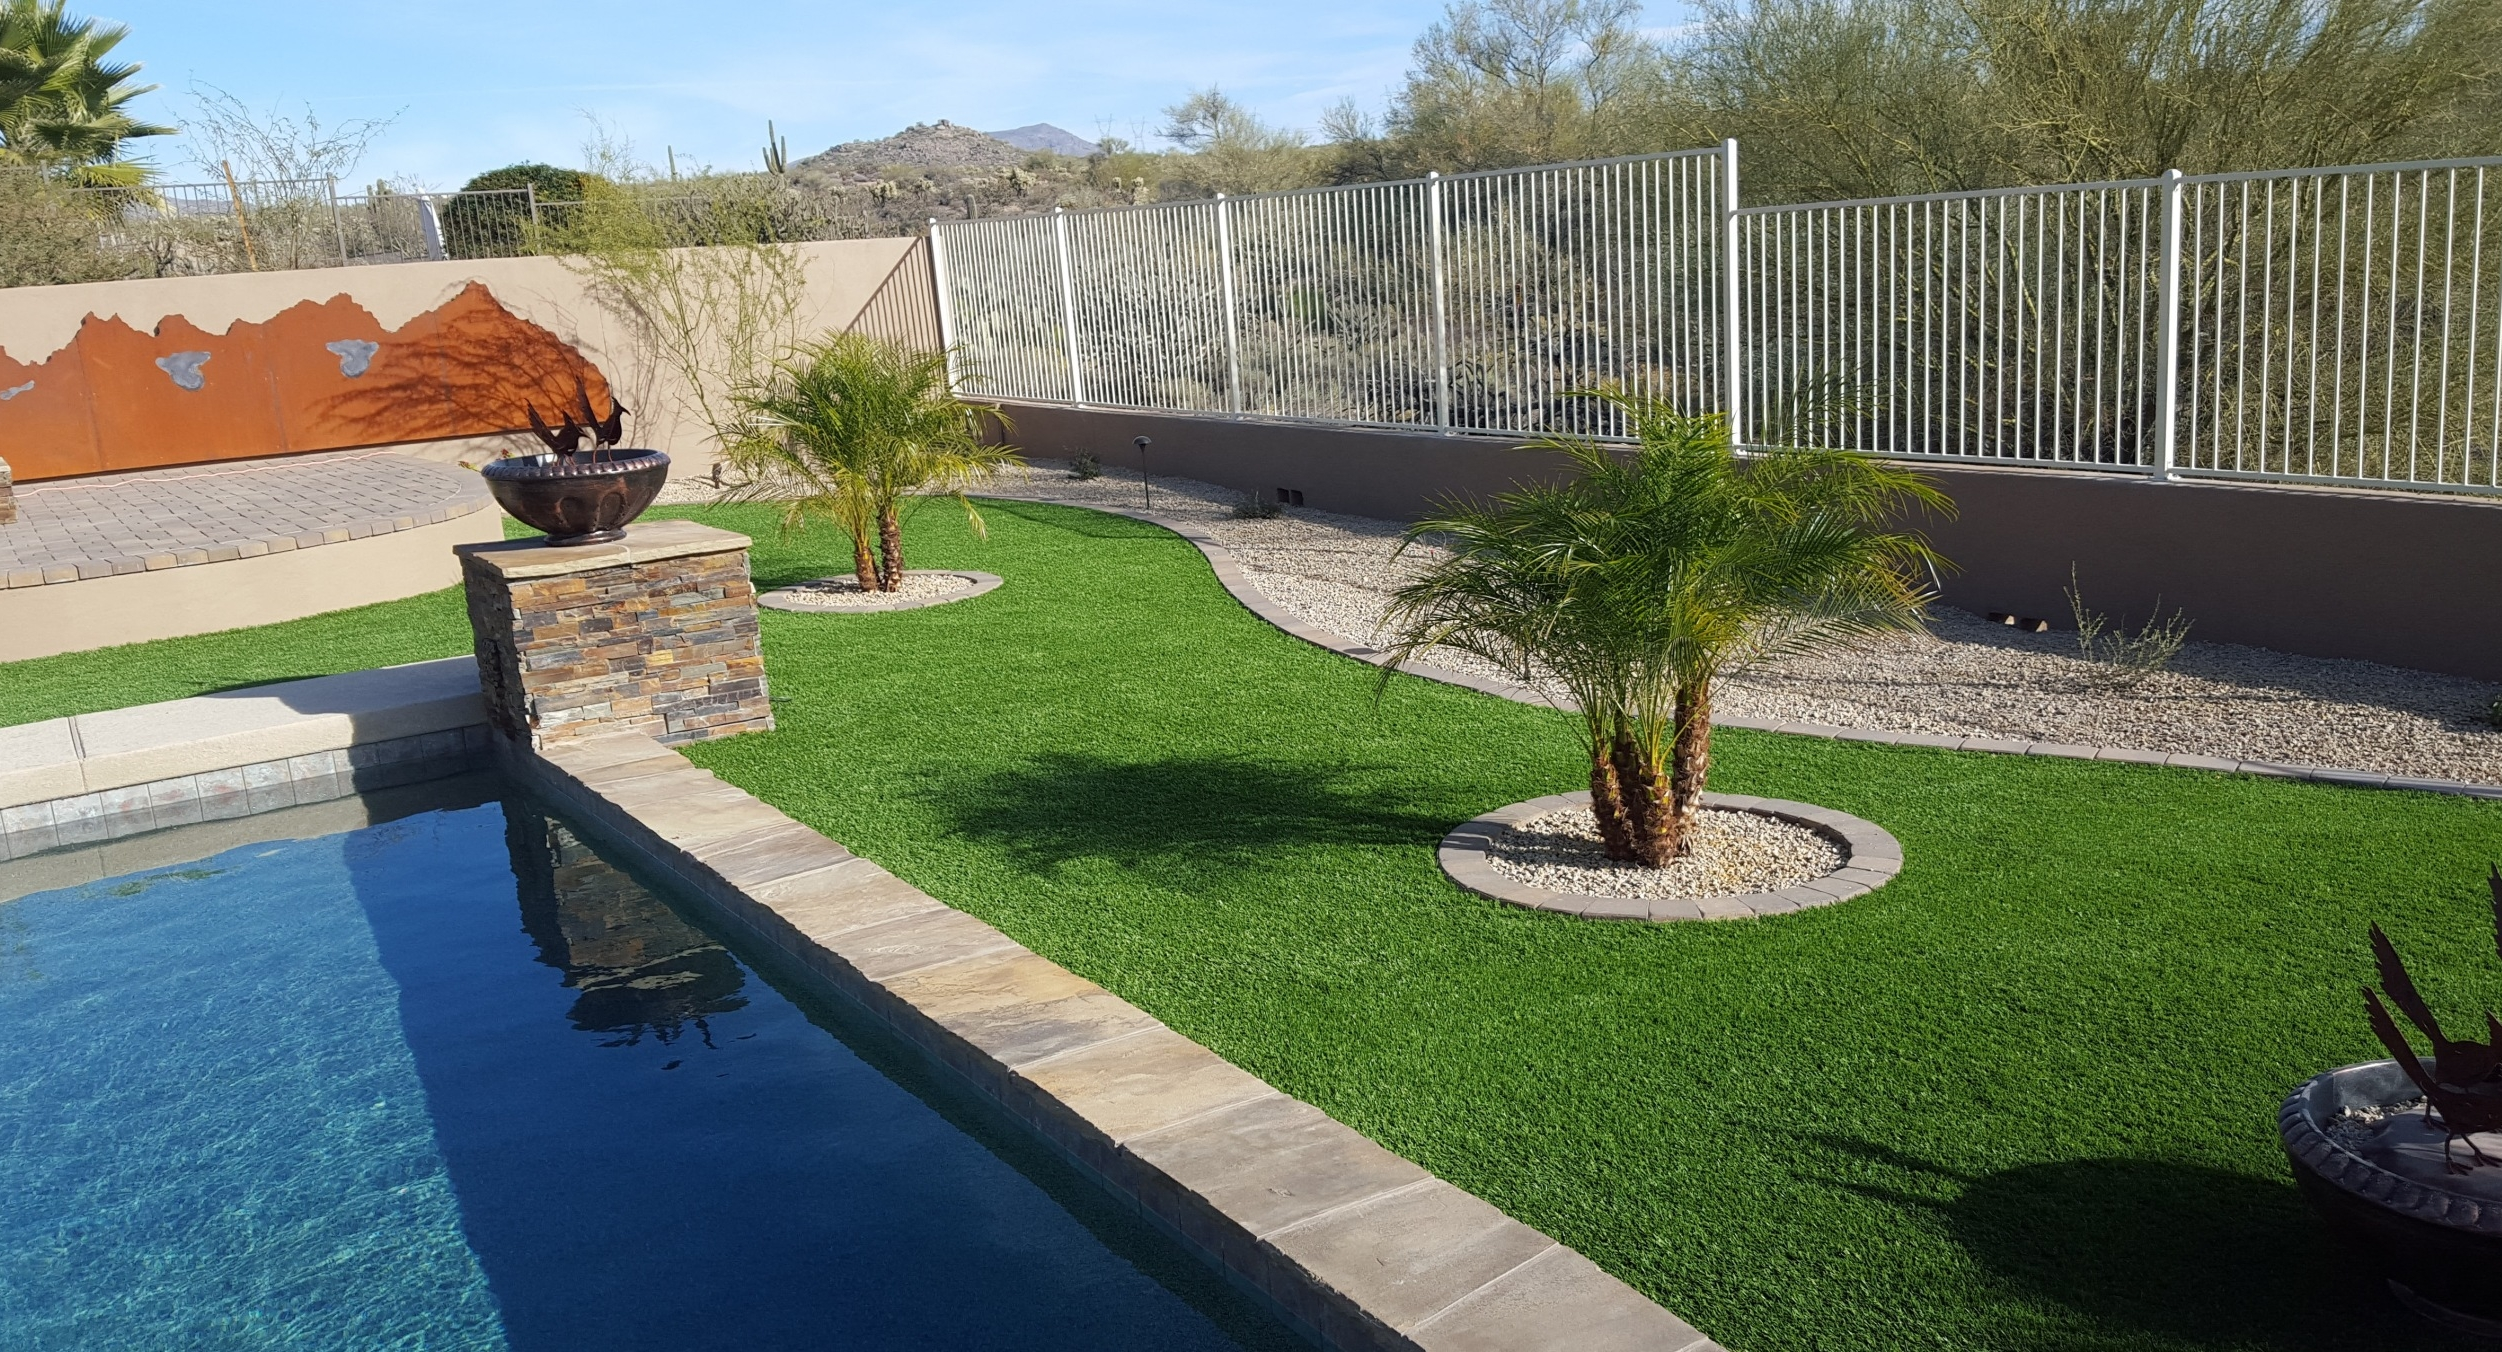 The pool area in this clients new landscaping. Phoenix, AZ low-maintenance synthetic grass brightens the space between the raised fire pit paver patio and the pools new stone pedestals and coping.